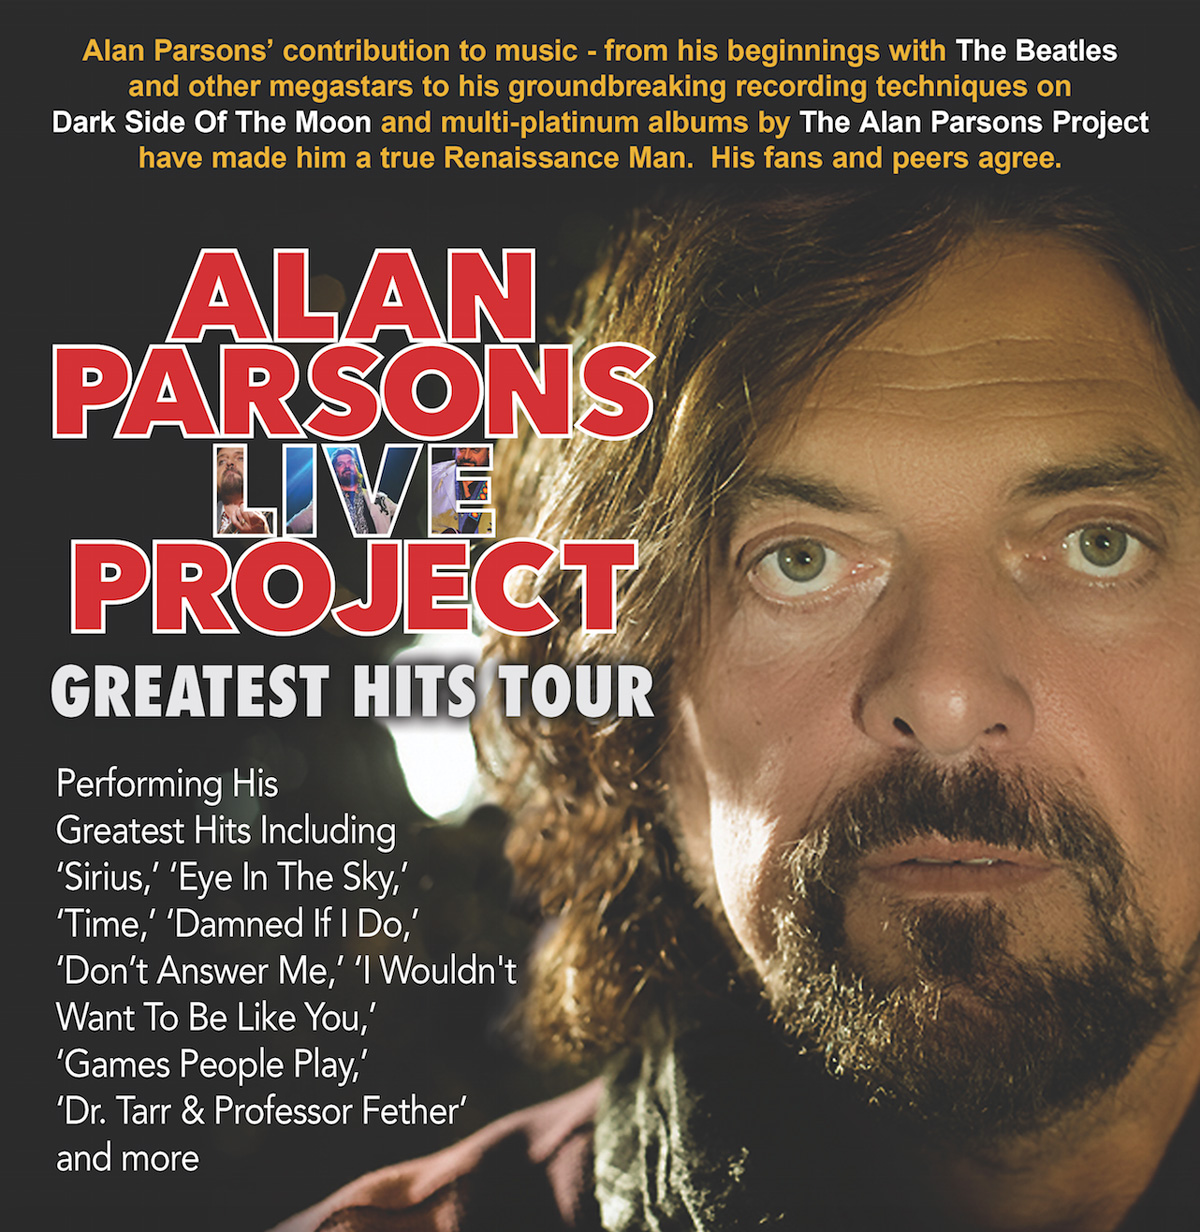 Eye In The Sky The Alan Parsons Project Album Art